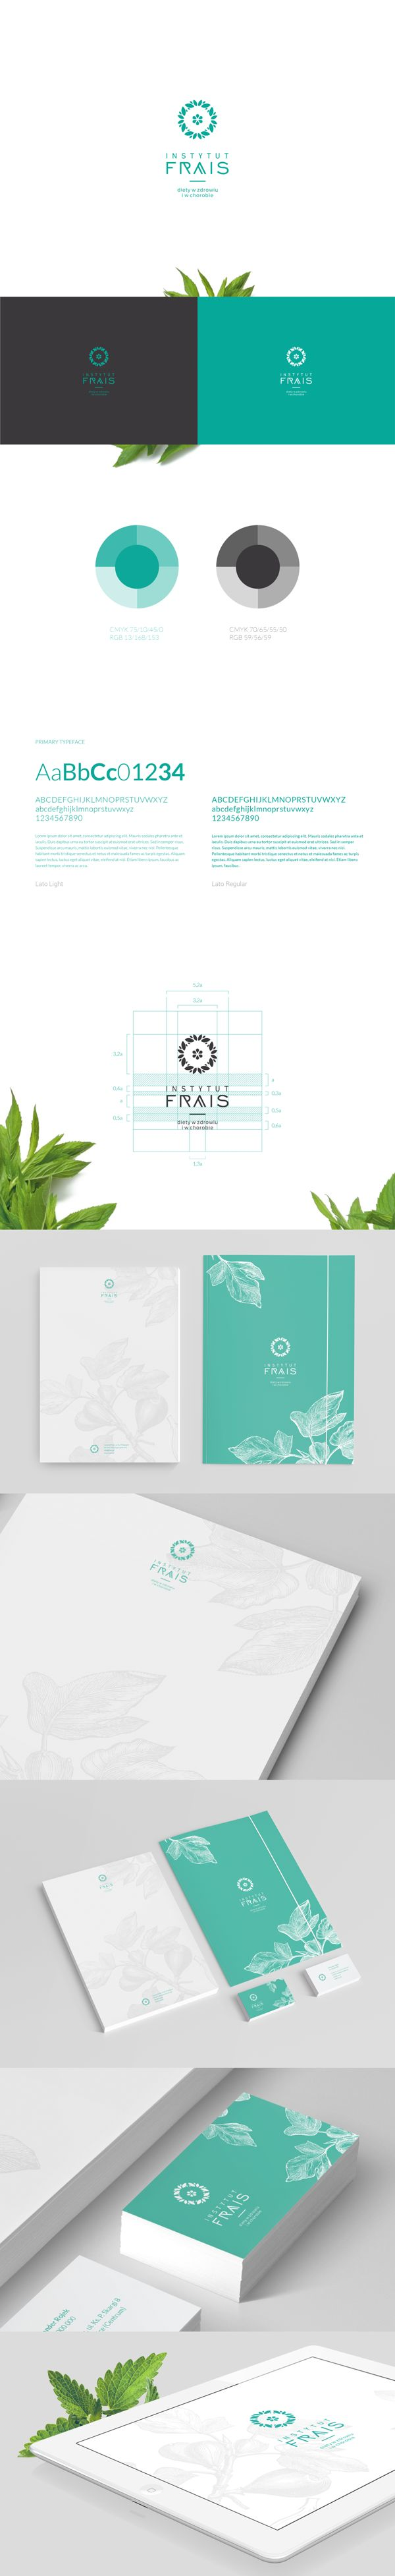 Frais by Motyf , via Behance - #businessCards #stationary #corporate #CorporateDesign #branding #marketing #design #identity #brand #branding #logo #LogoDesign #IdentityDesign #BrandStyling #marketing